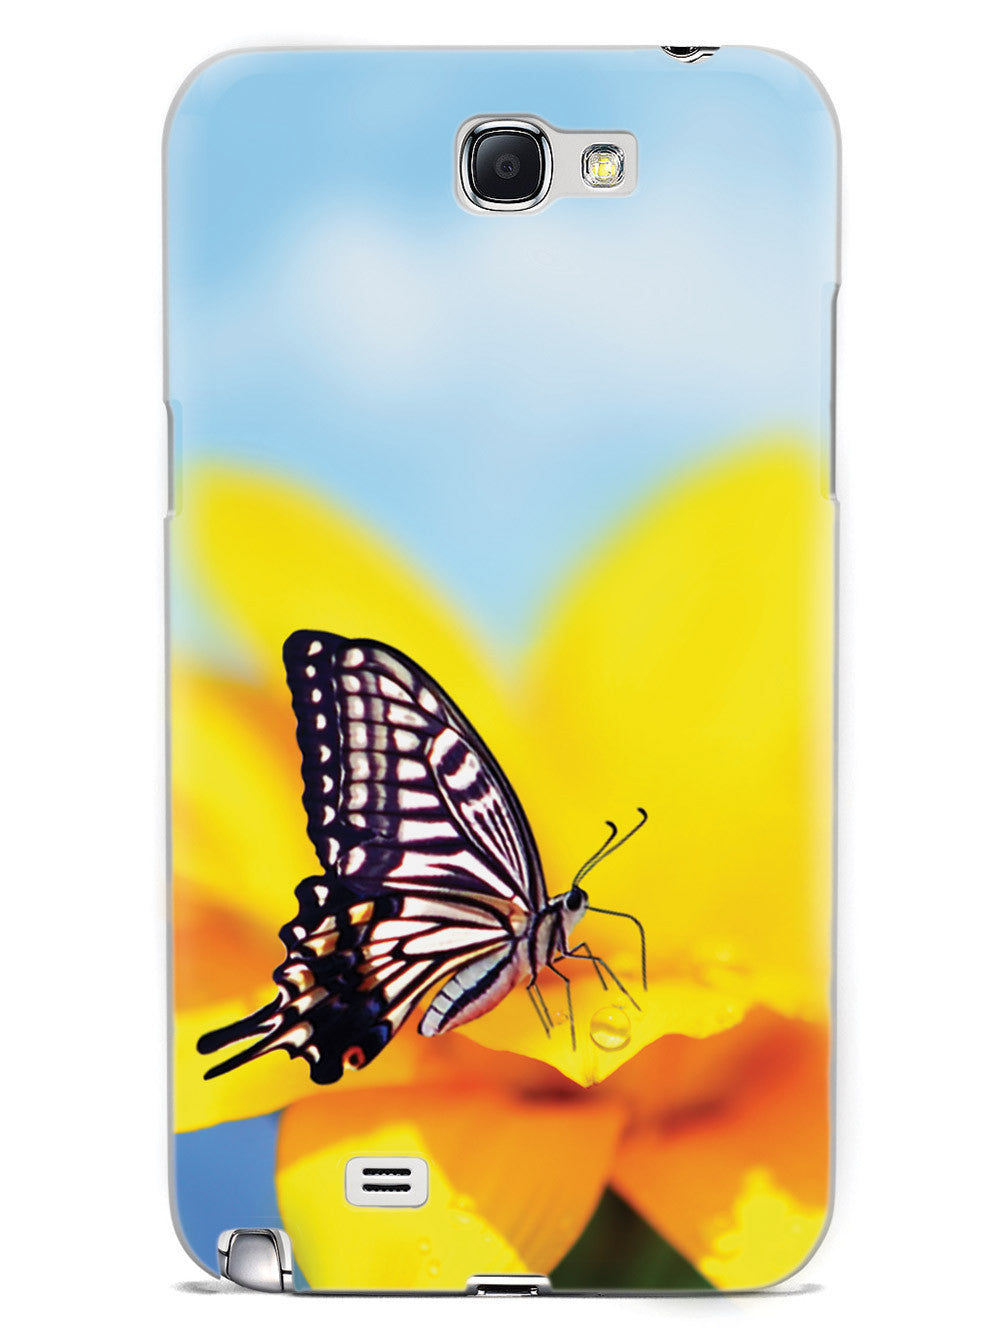 Monarch Butterfly on Yellow Flower - White Case